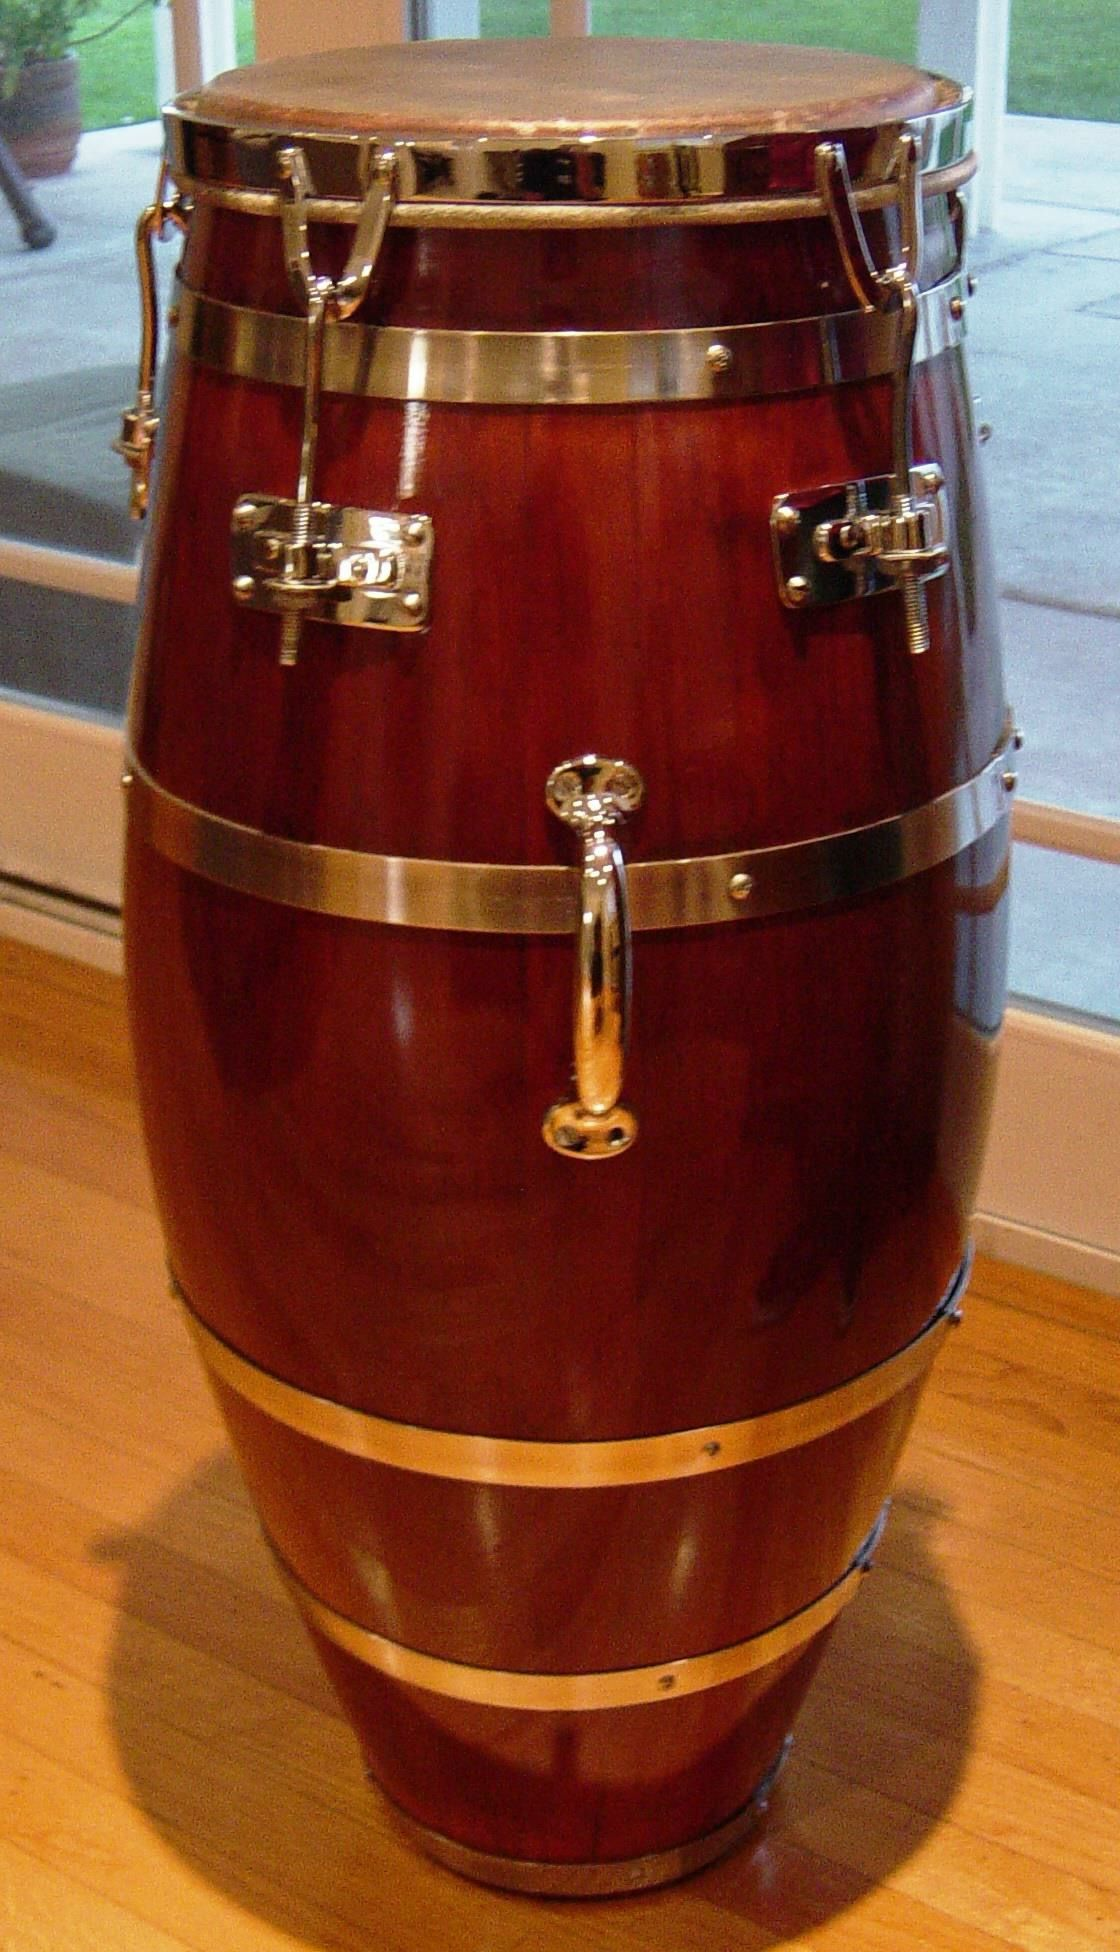 My Vintage Cuban Conga Made By Using Wine Barrel Staves Artisan Candido Requena Circa 1950 Percussion Instruments Congas Percussion